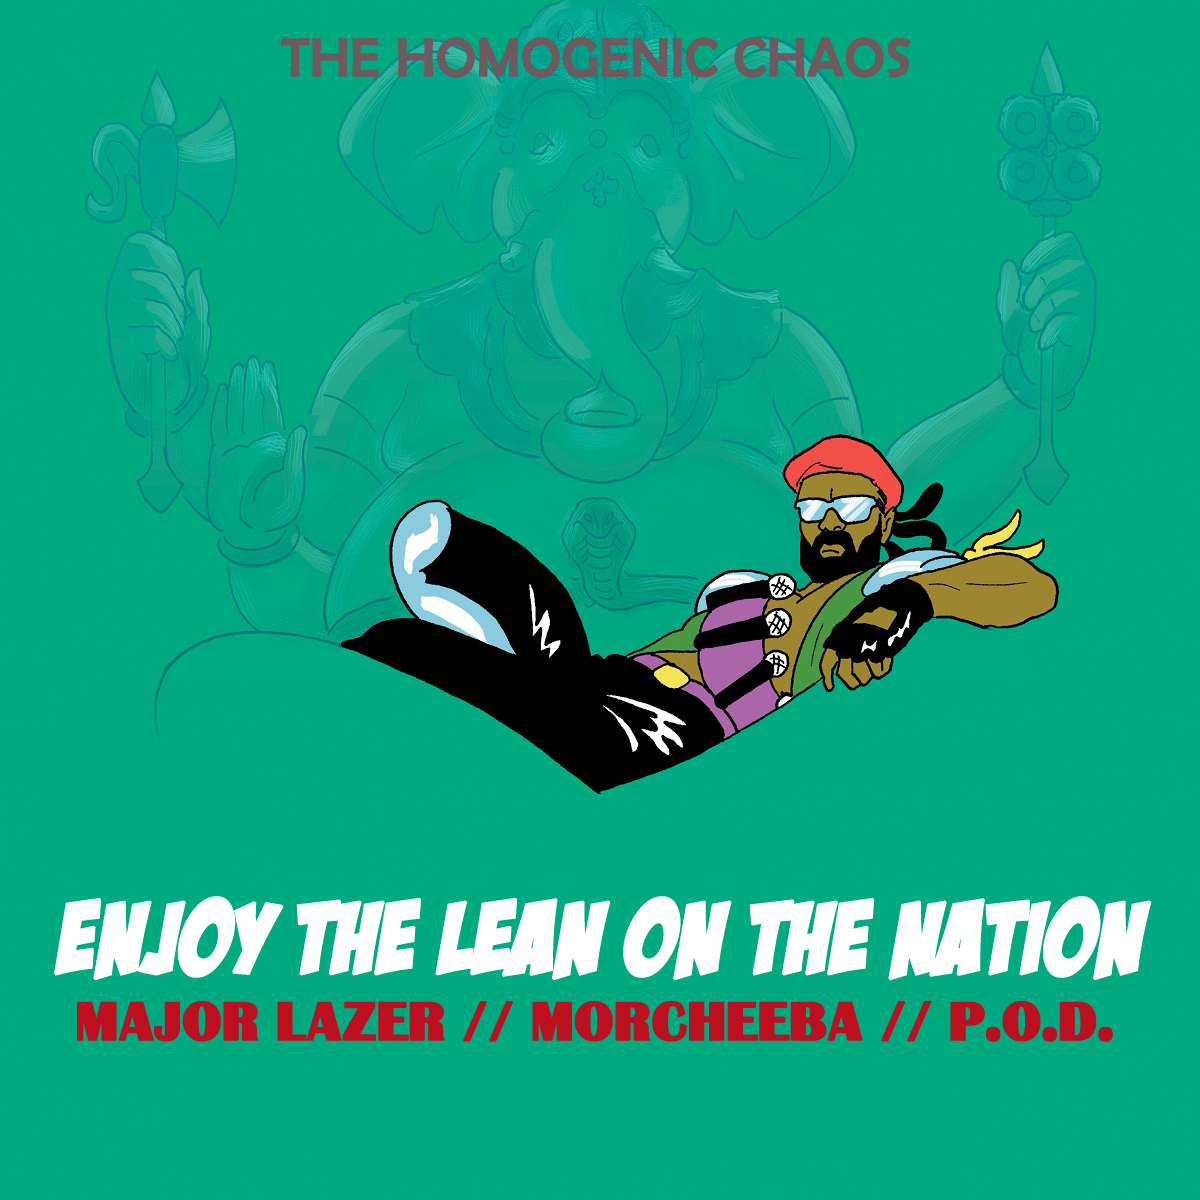 Enjoy the lean on the Nation (Major Lazer vs. Morcheeba vs. P.O.D.)